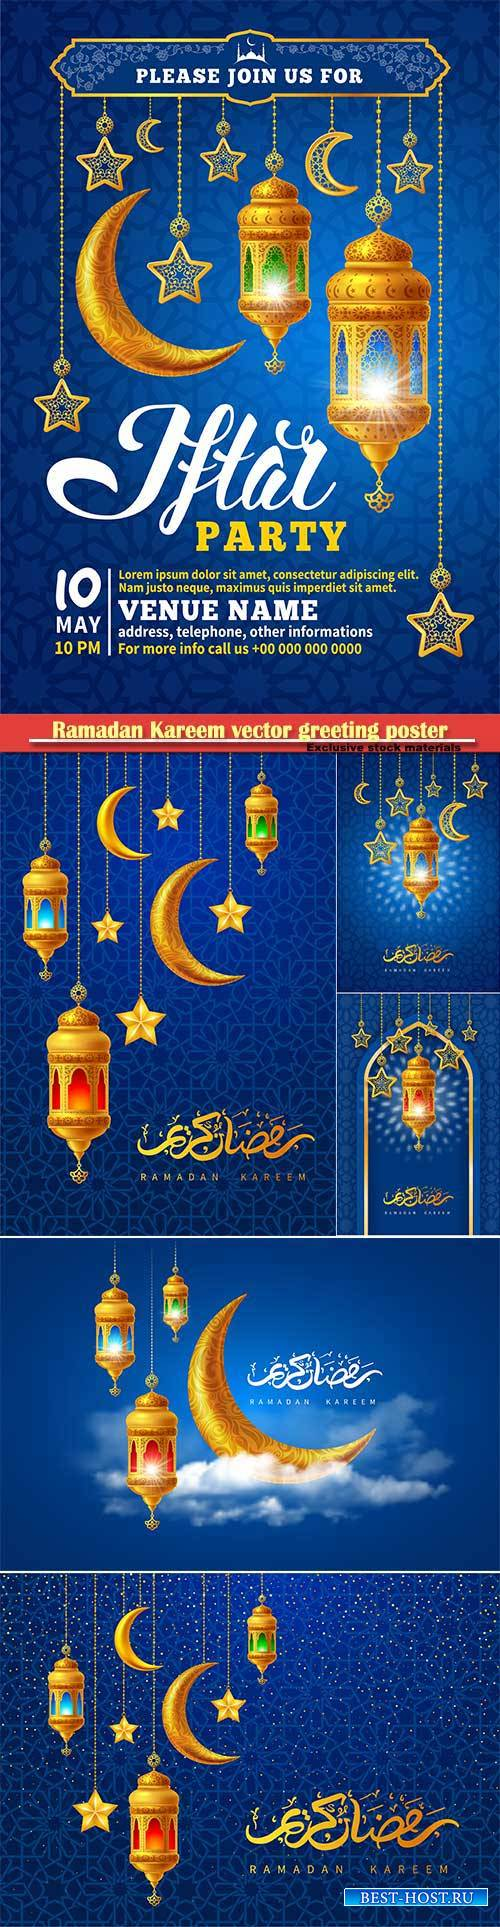 Ramadan Kareem vector greeting poster, invitation arabic card